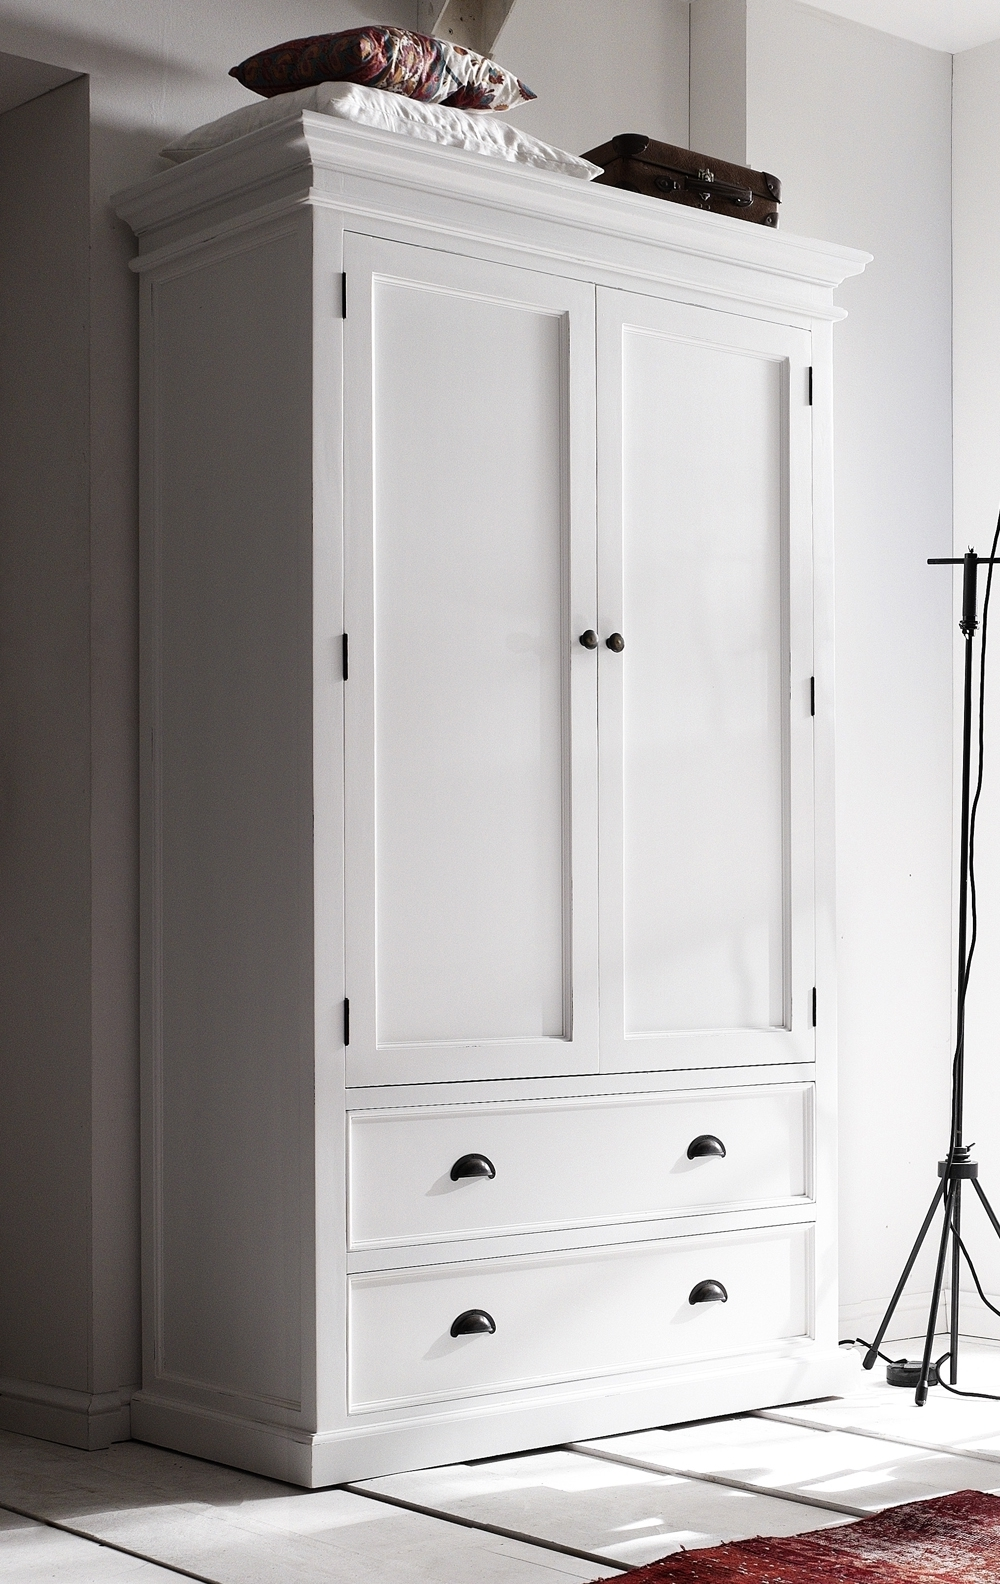 Latest With The Best Solution To Practical But Elegant Design, The With Regard To Cheap Double Wardrobes (View 5 of 15)